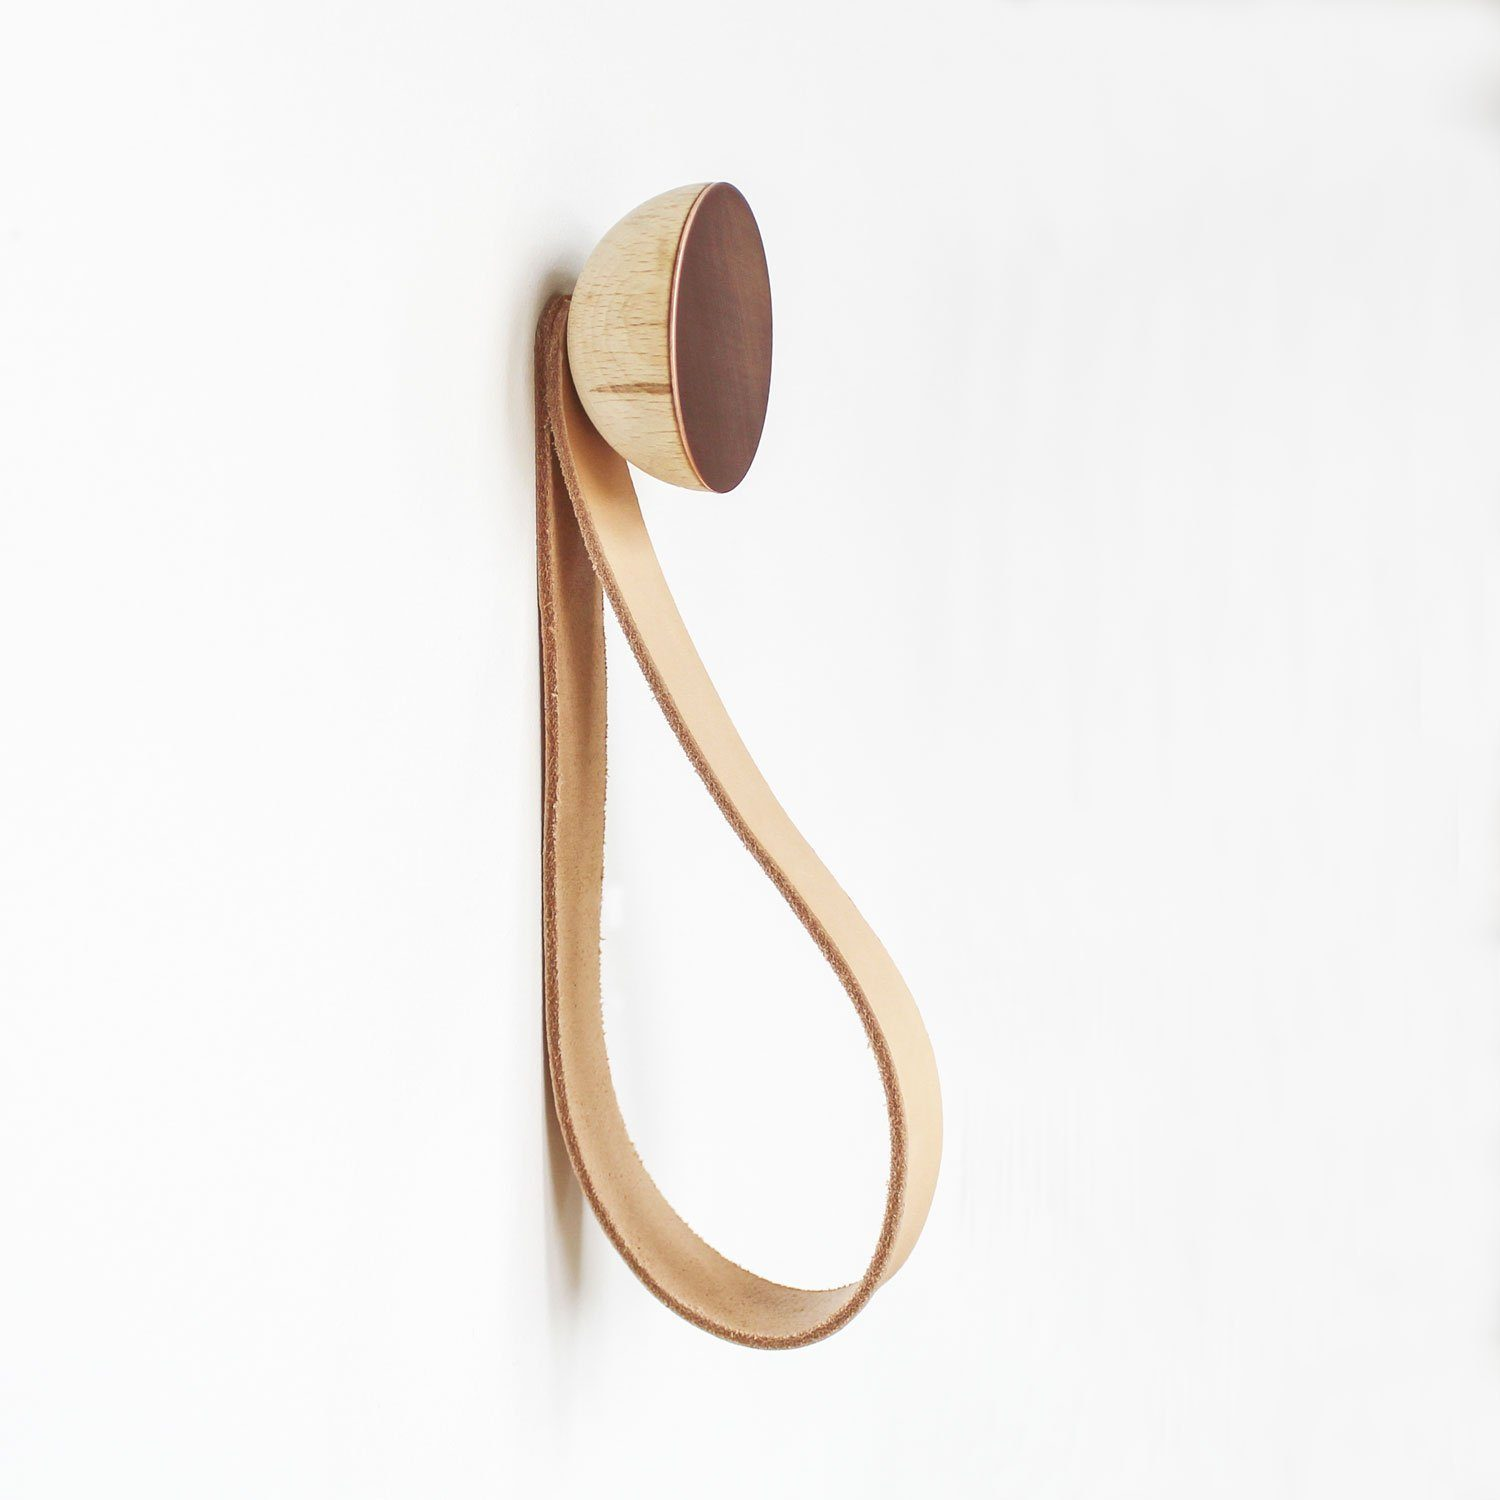 Round Beech Wood & Copper Wall Hook with Leather Strap - Hooks - 5mm Paper - Naiise